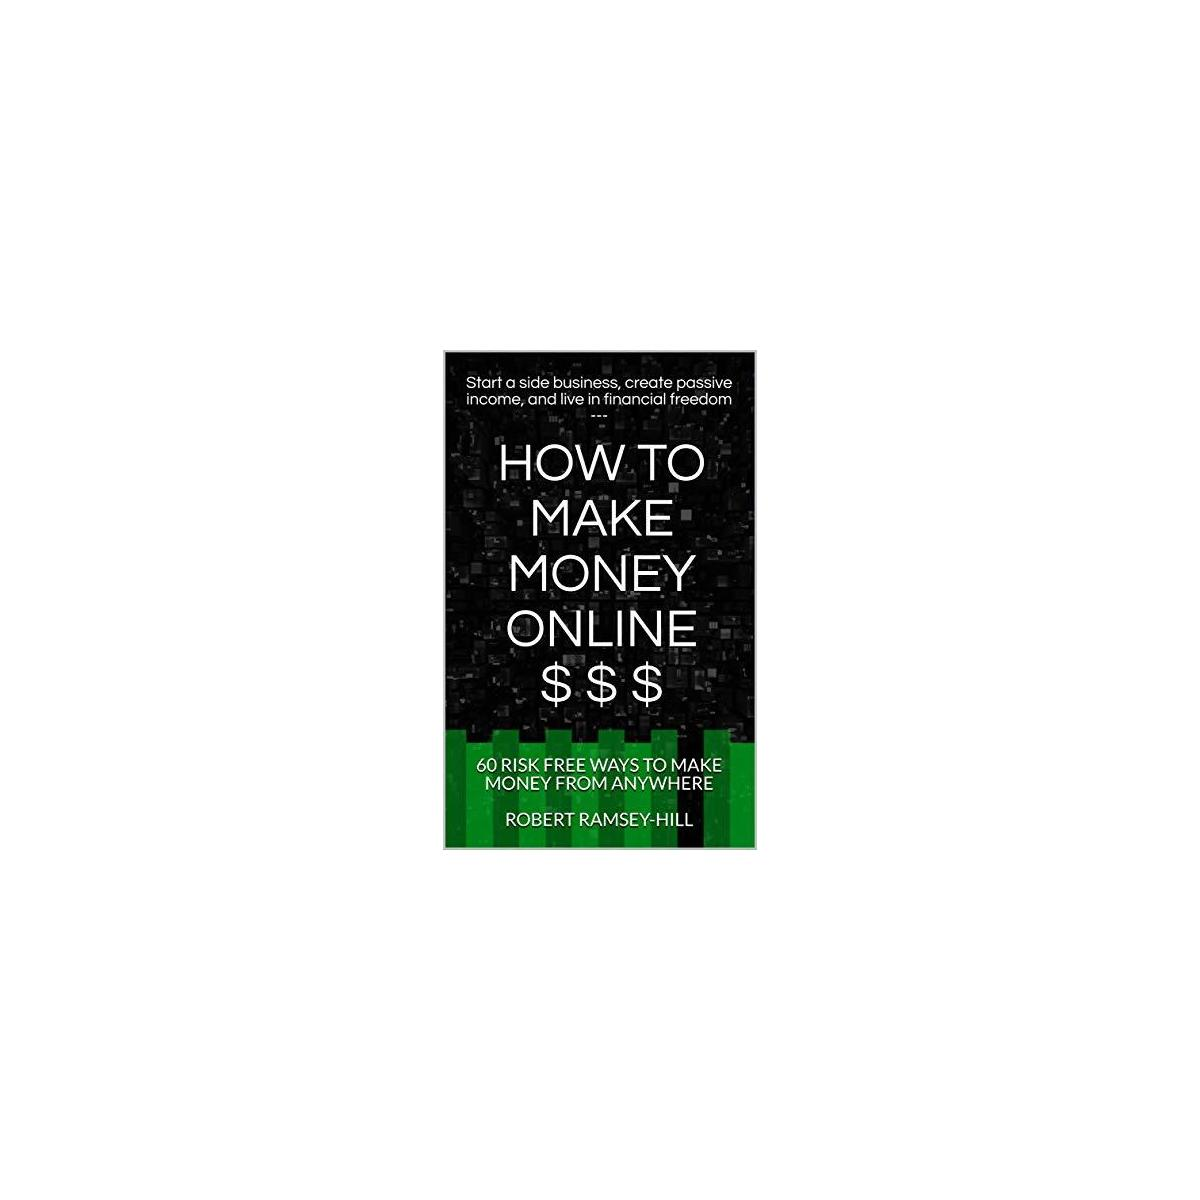 How to Make Money Online - Start a side business, create passive income, and live in financial freedom: 60 risk free ways to make money from anywhere